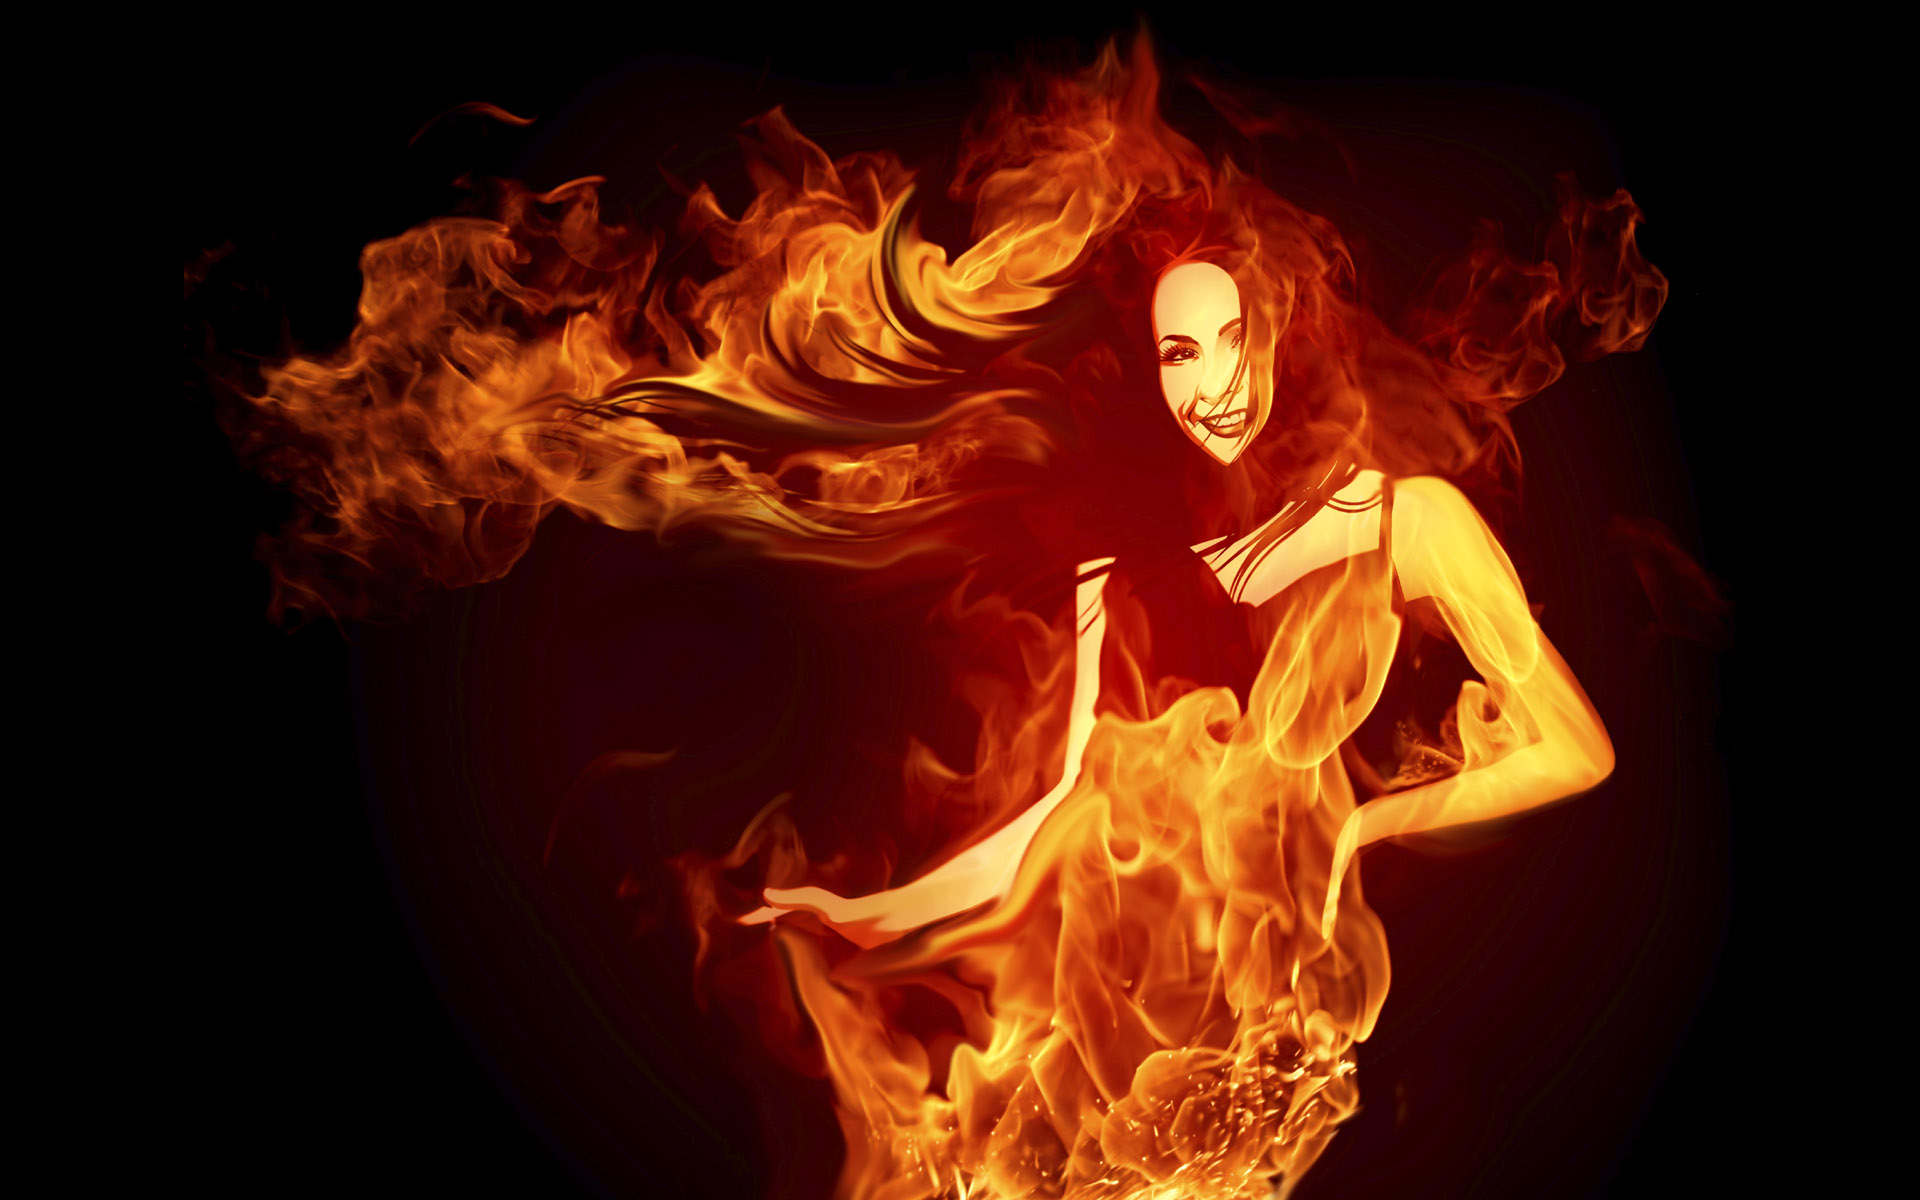 Women With Cars Fire Flames 256346 Wallpaper wallpaper